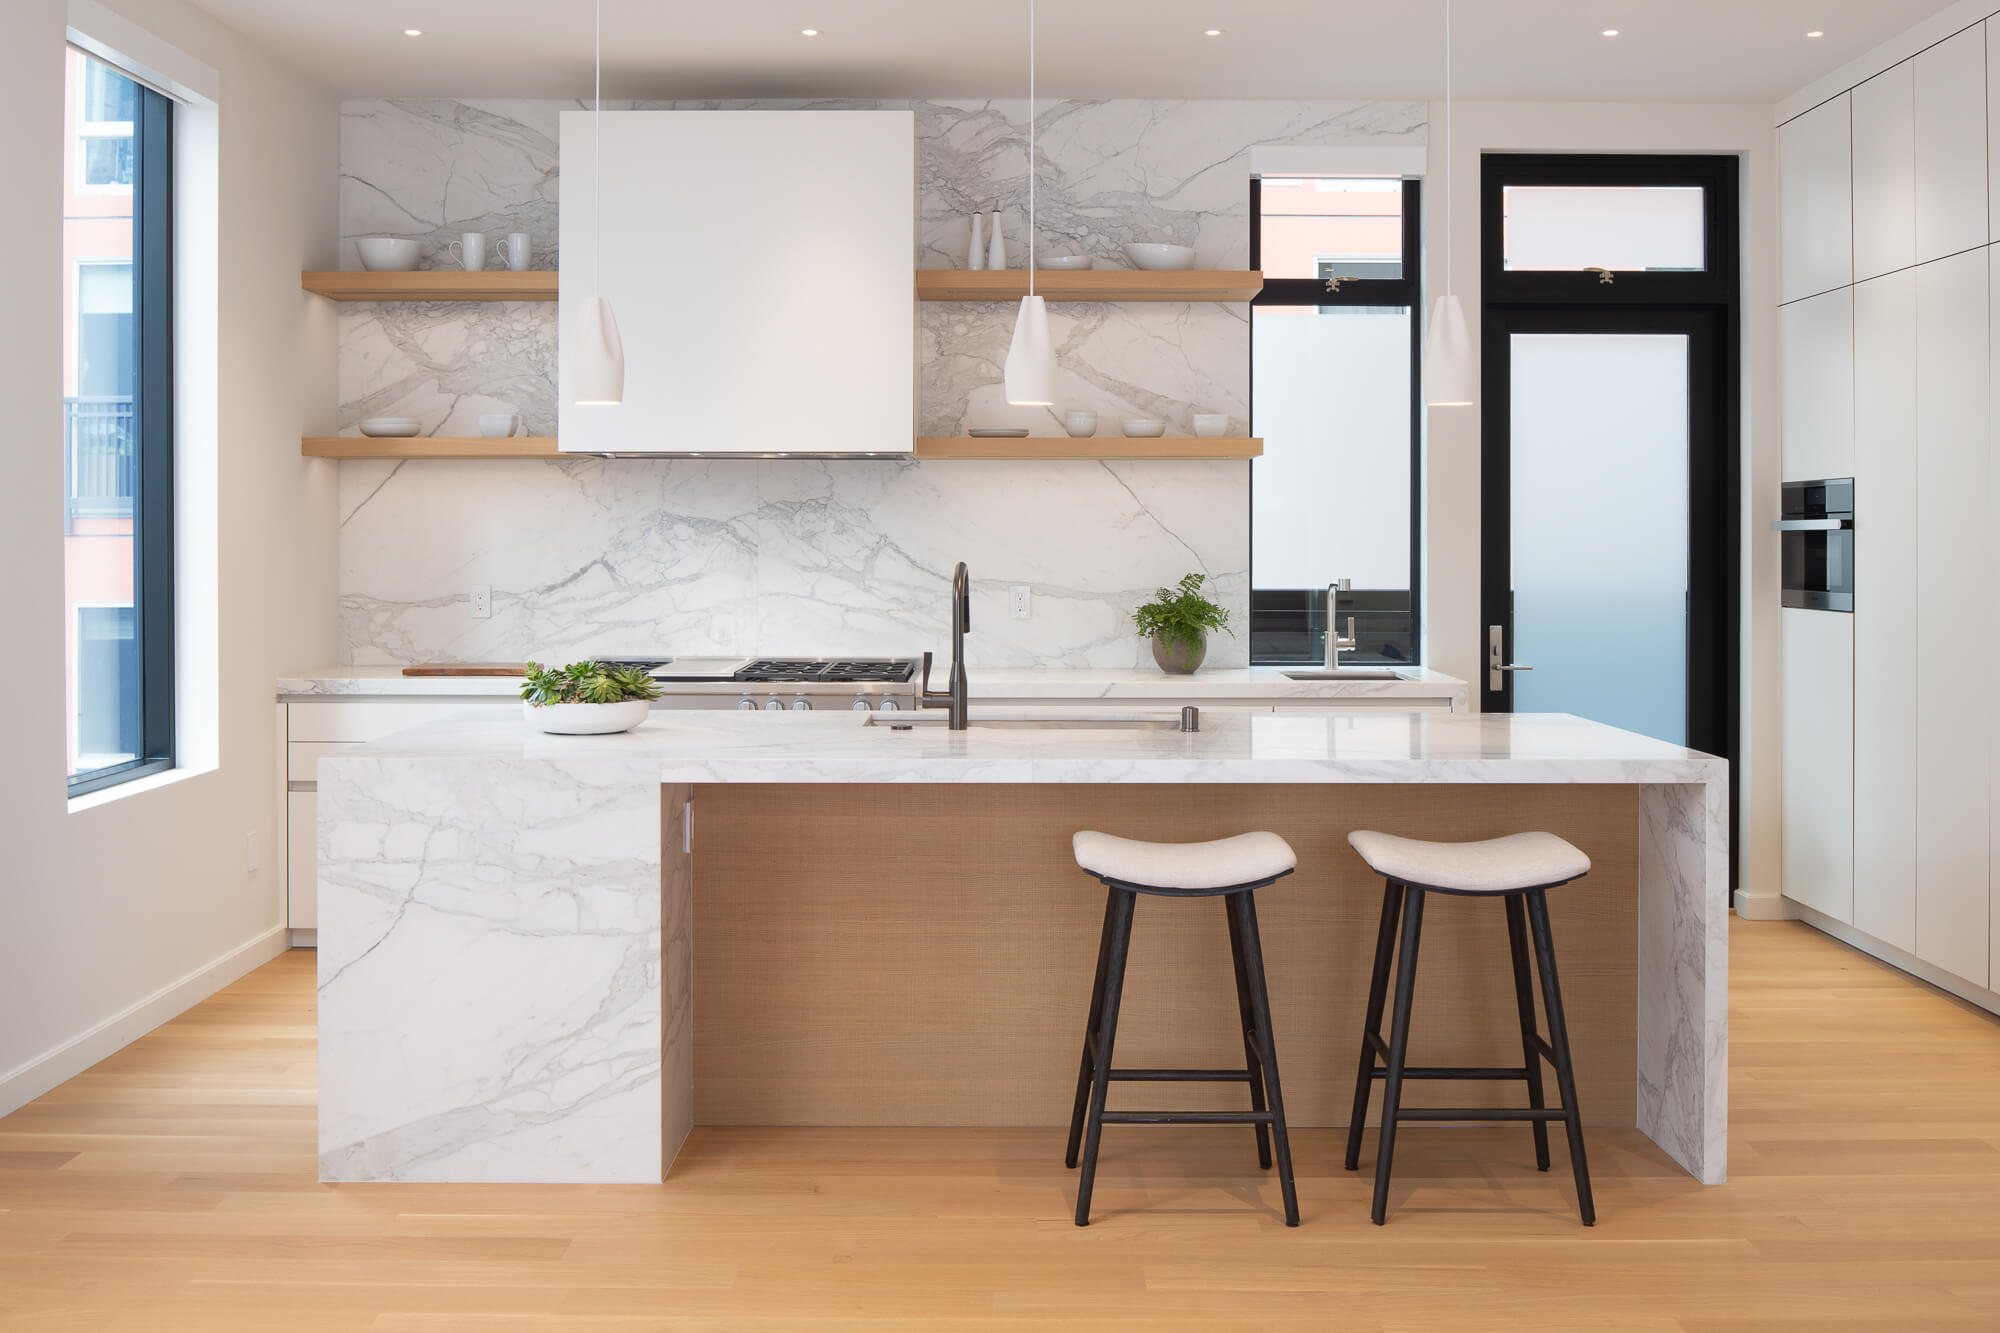 Light and clean kitchen with rift sawn white oak floors, marble island and backsplash, and floating shelving.